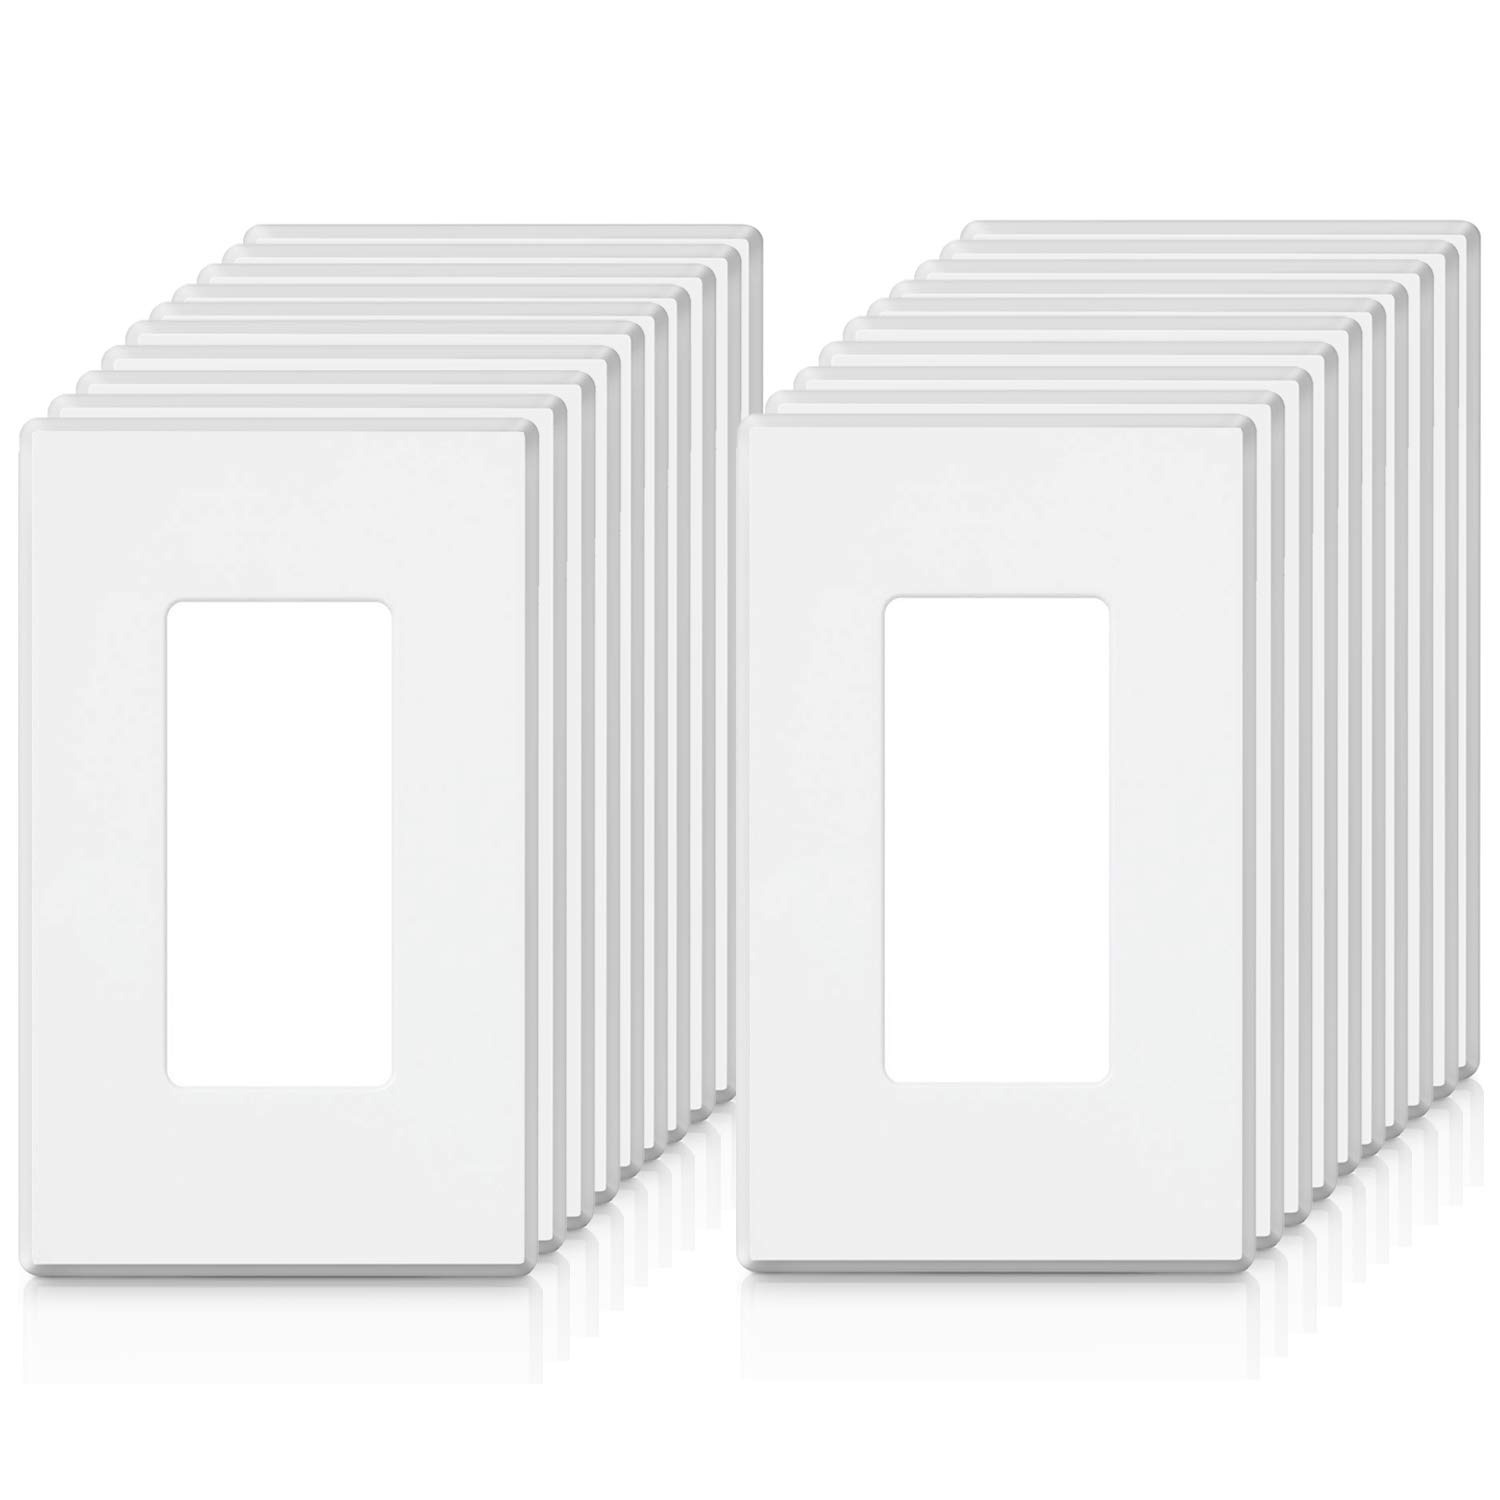 [20 Pack] BESTTEN 1-Gang Screwless Wall Plate, USWP2 Elegance White Series, Standard Outlet Cover for Light Switch, Dimmer, Sensor, Timer, and Receptacle, Residential and Commercial, UL Listed